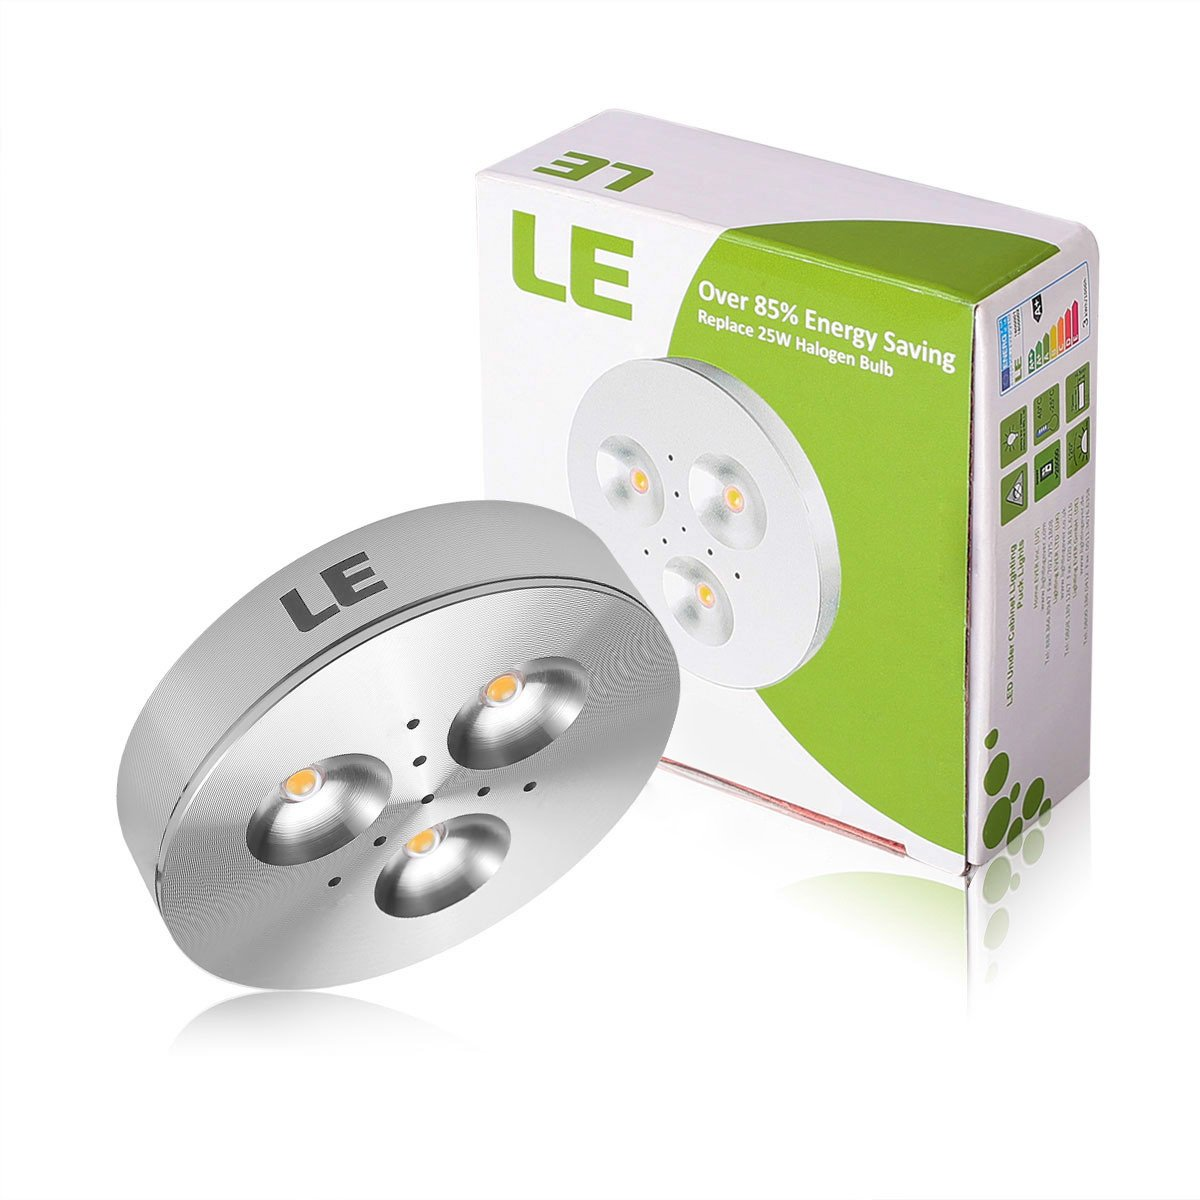 Le 5 pack led under cabinet lighting brightest puck lights 12v le 5 pack led under cabinet lighting brightest puck lights 12v dc under counter lighting 25w halogen replacement 240lm warm white amazon mozeypictures Gallery